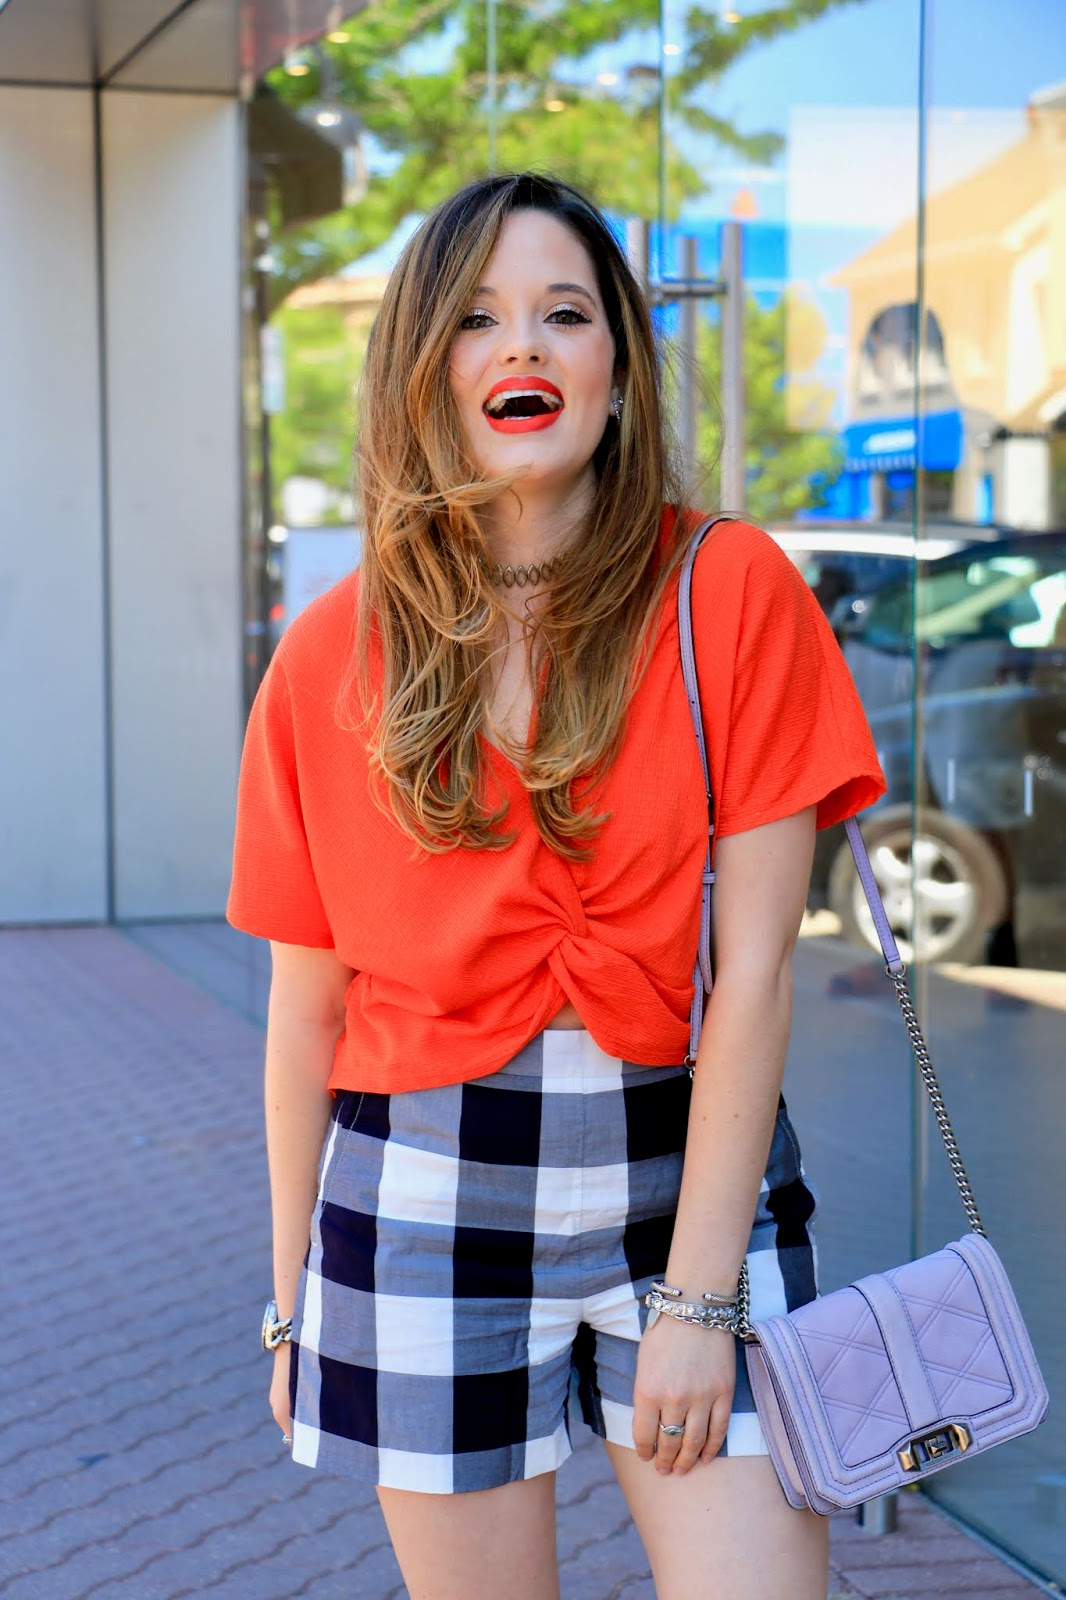 Nyc fashion blogger of Kat's Fashion Fix, Kathleen Harper, wearing high-waisted plaid shorts